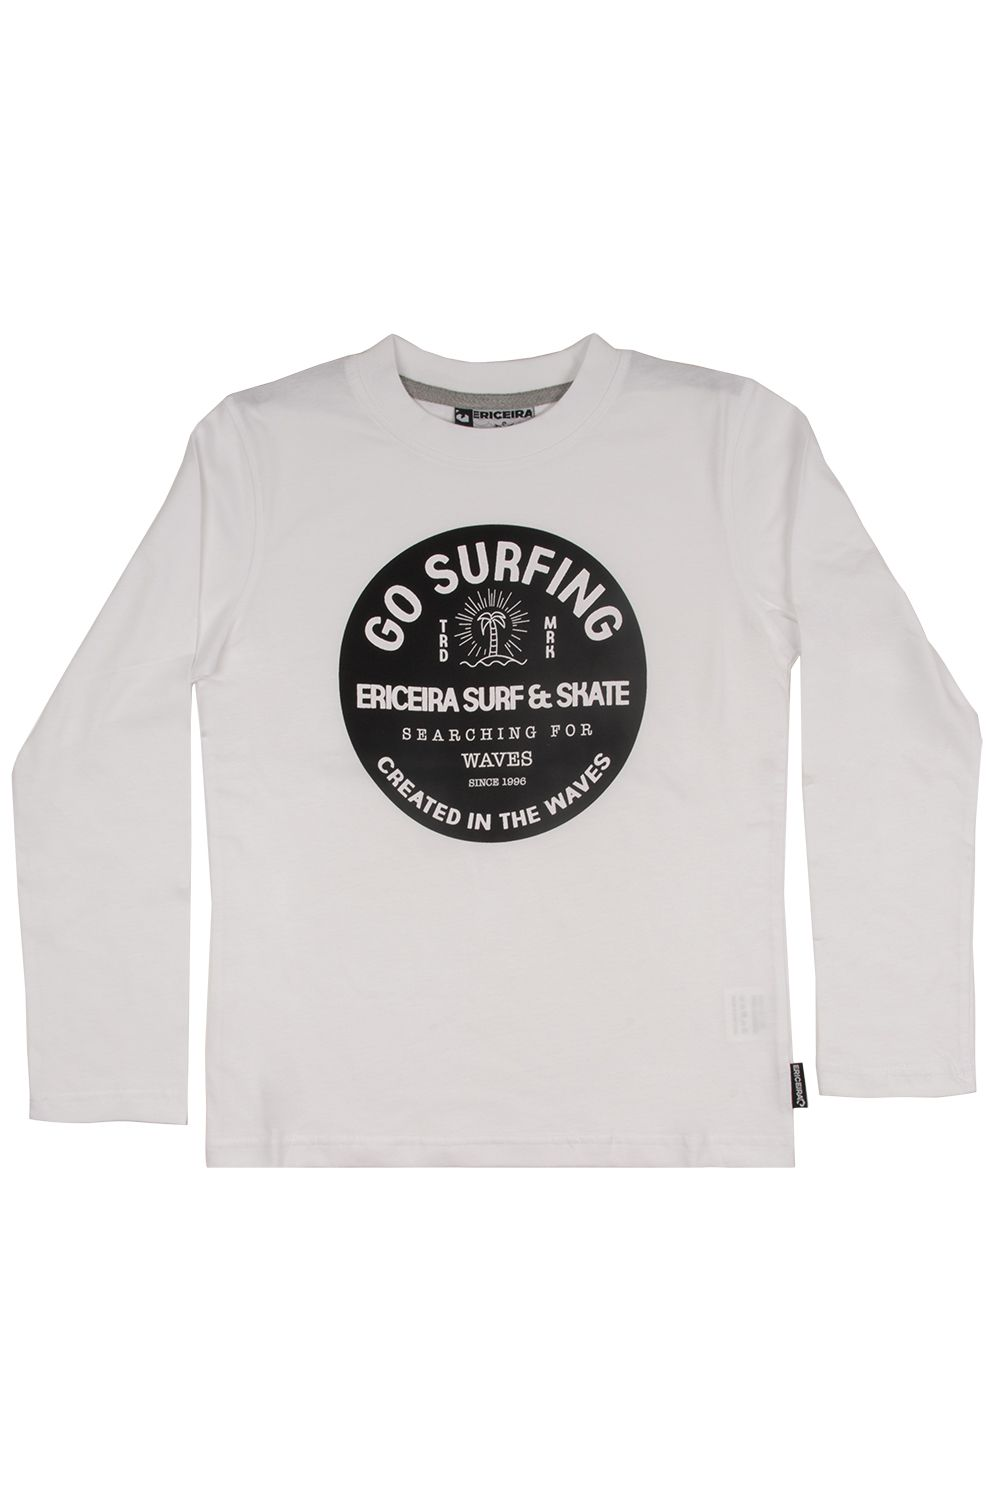 Ericeira Surf Skate L-Sleeve LONG BEACH White